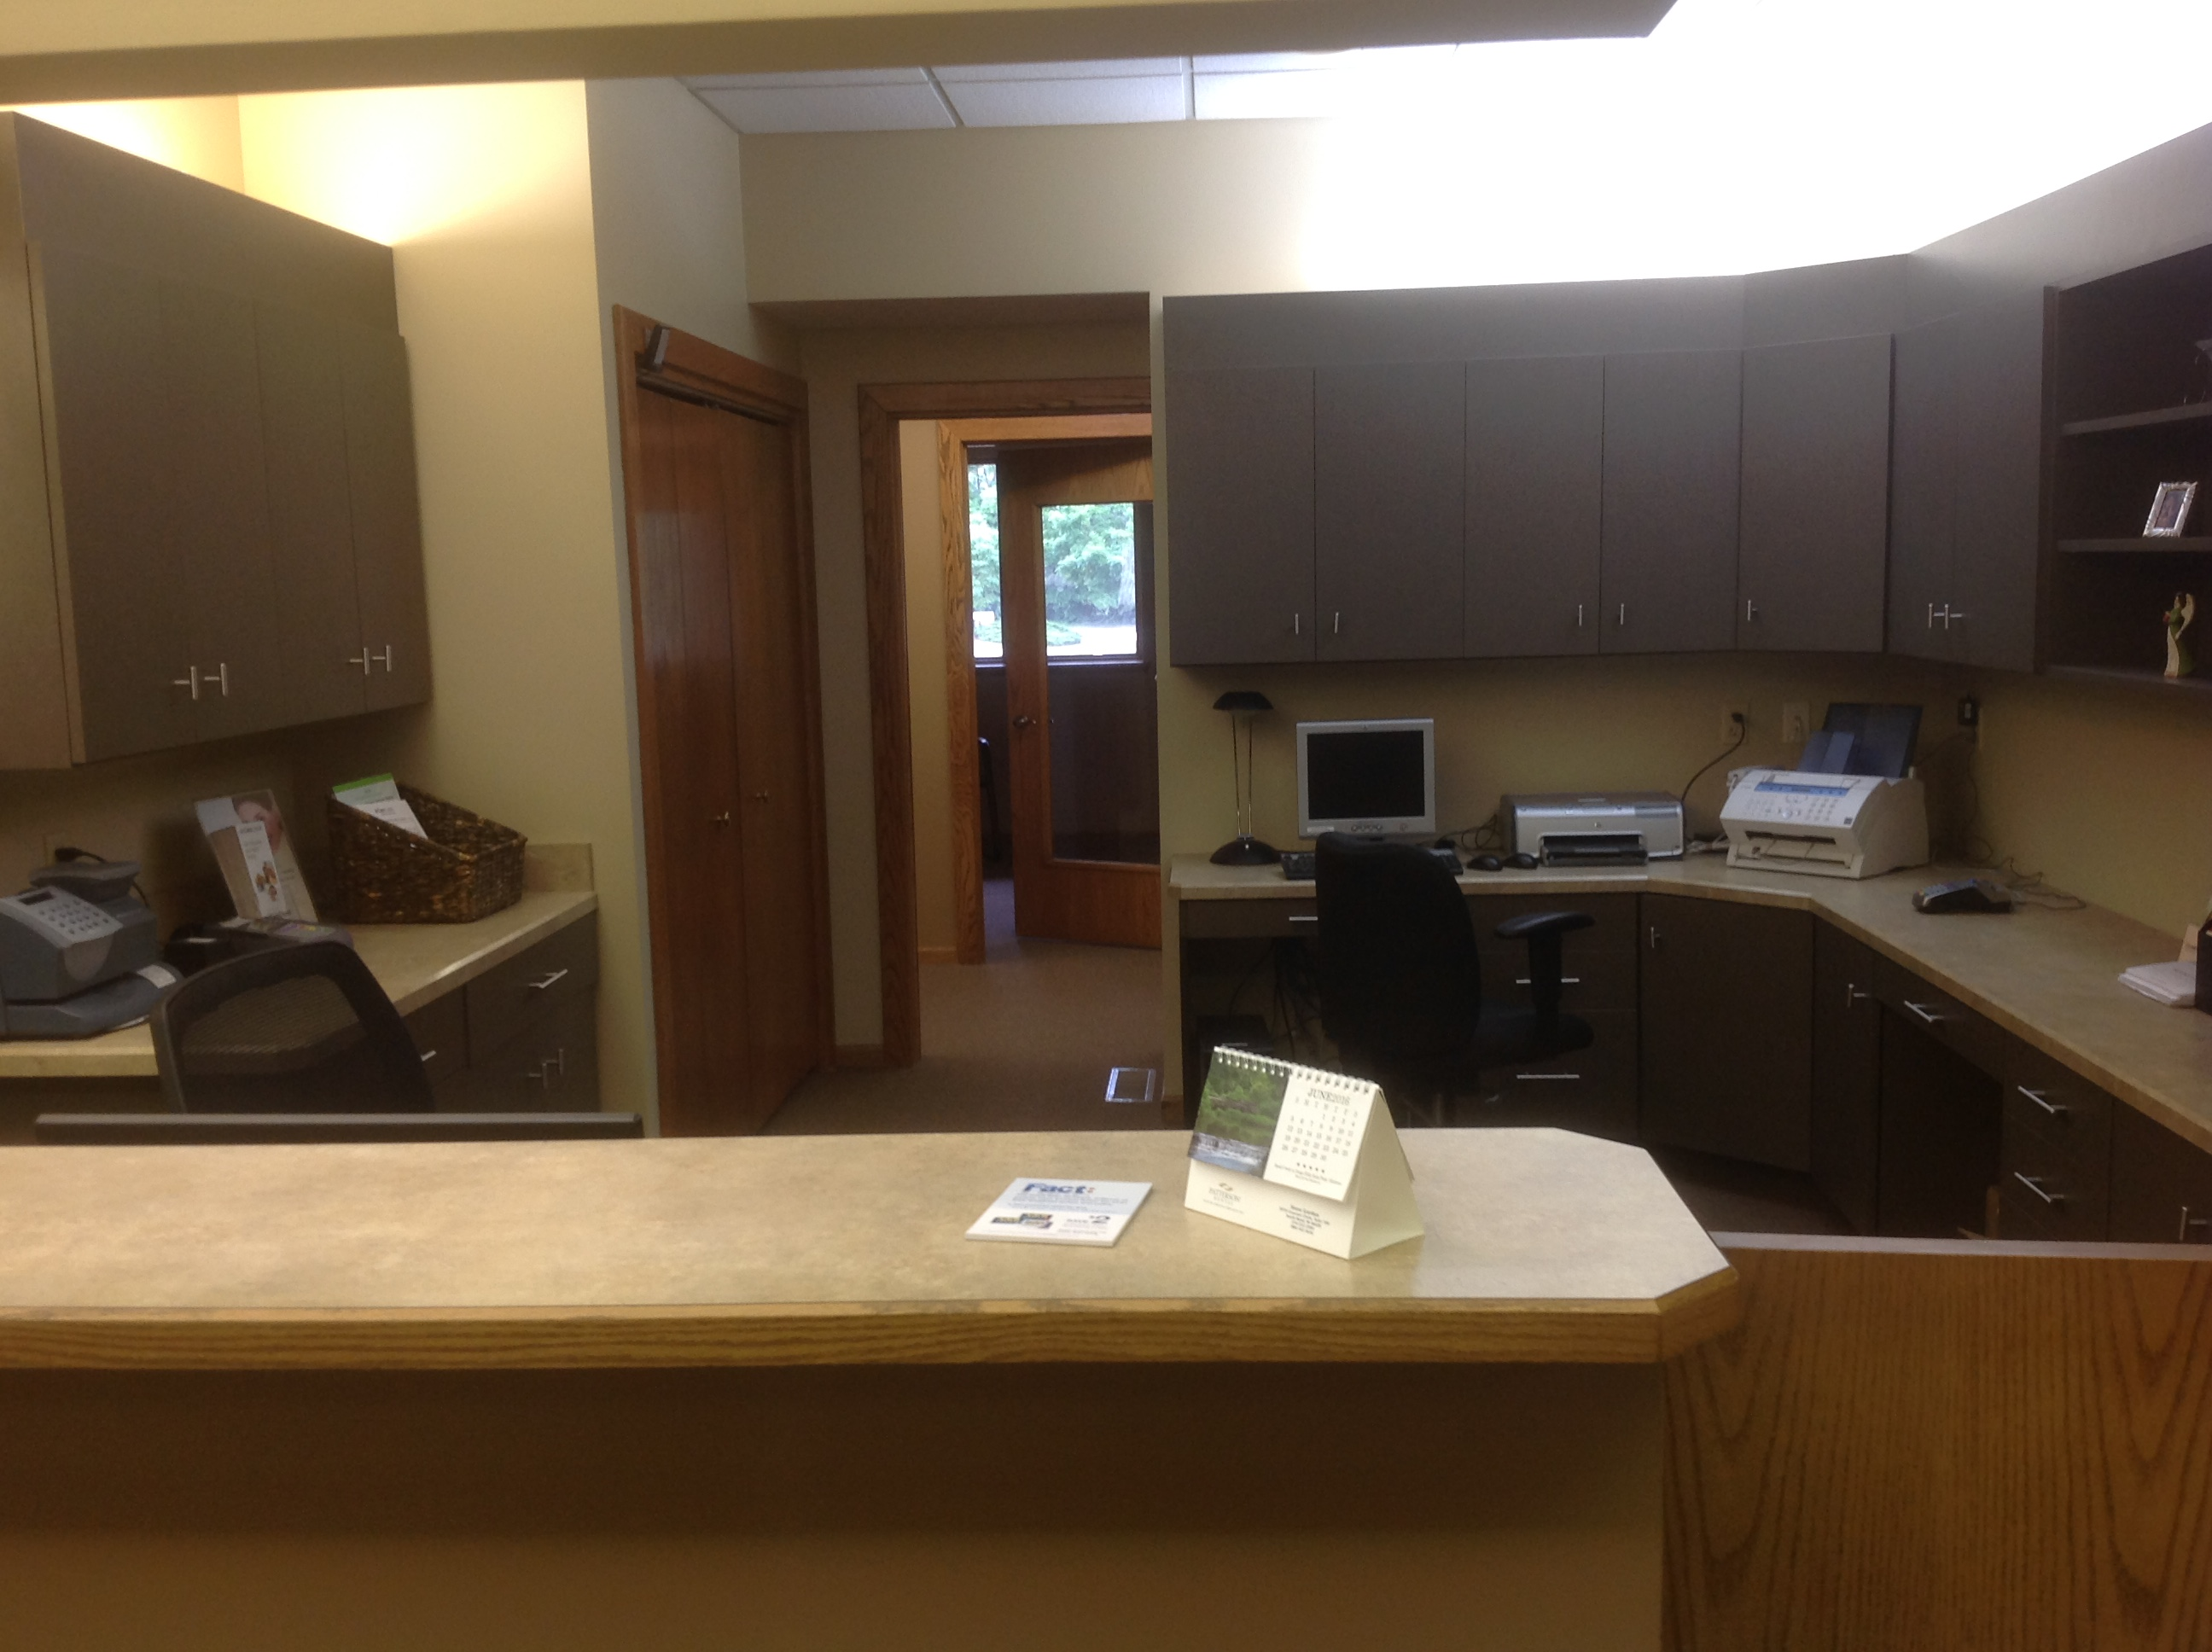 Complete Family Dentistry - R. Daron Sheline DDS image 20